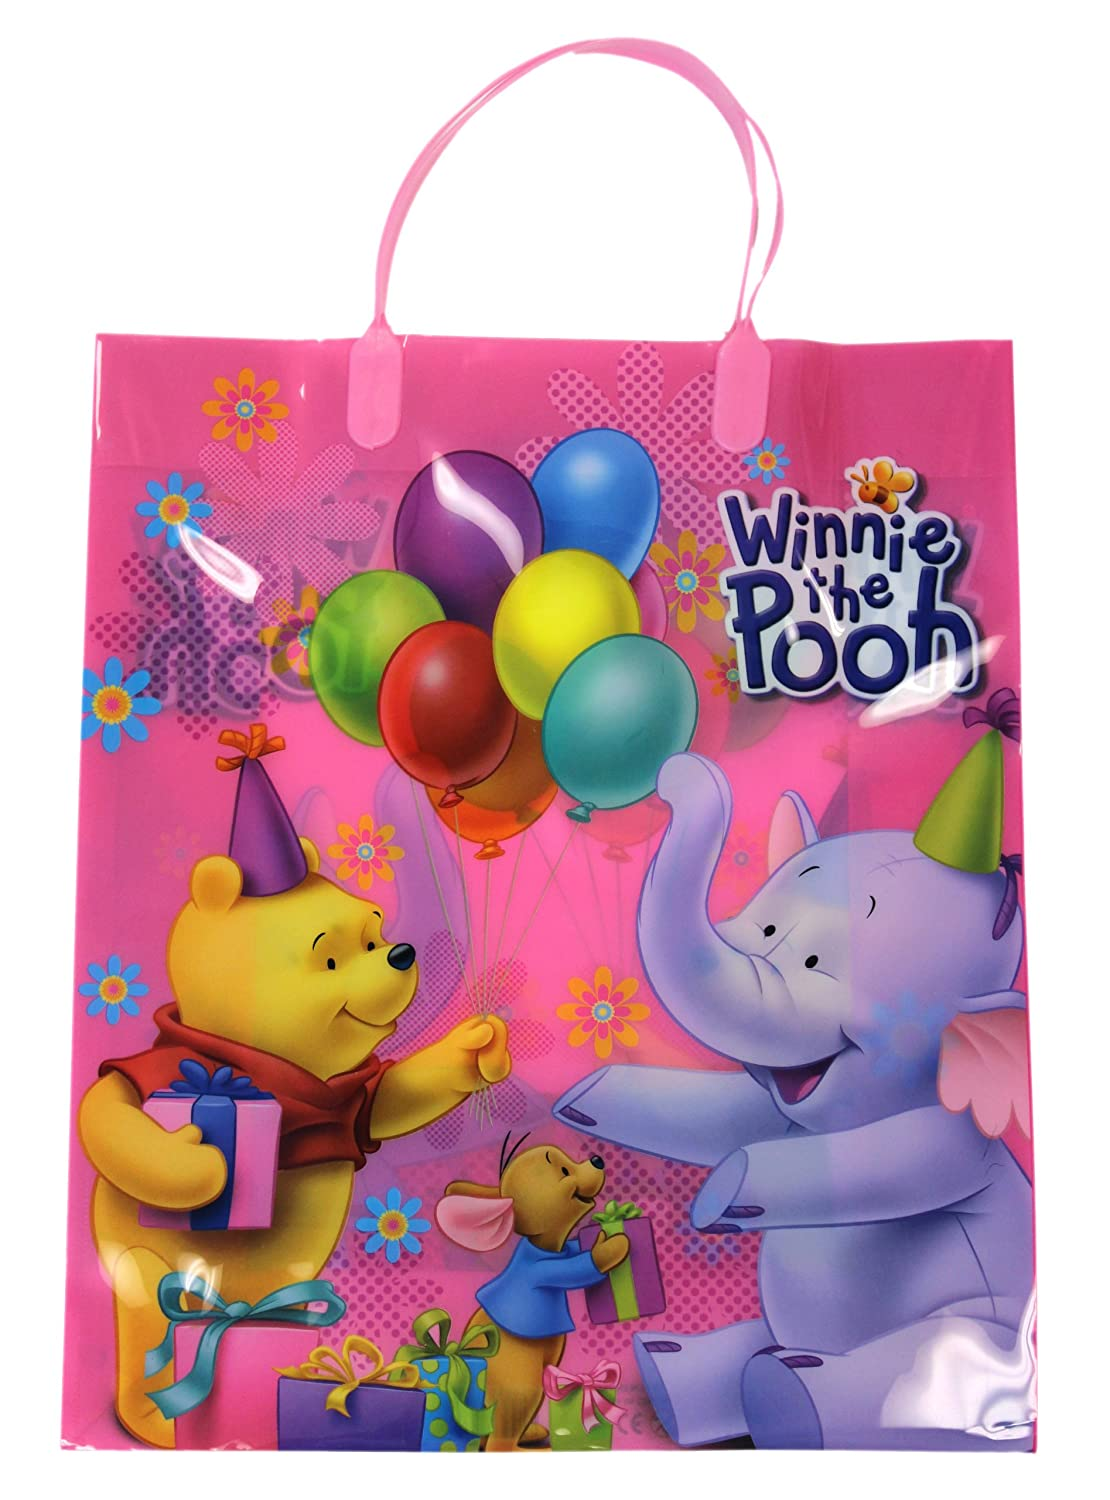 6 Piece Winnie the Pooh Gift Bags (Assorted)  Assorted Winnie the Pooh Gift Bags